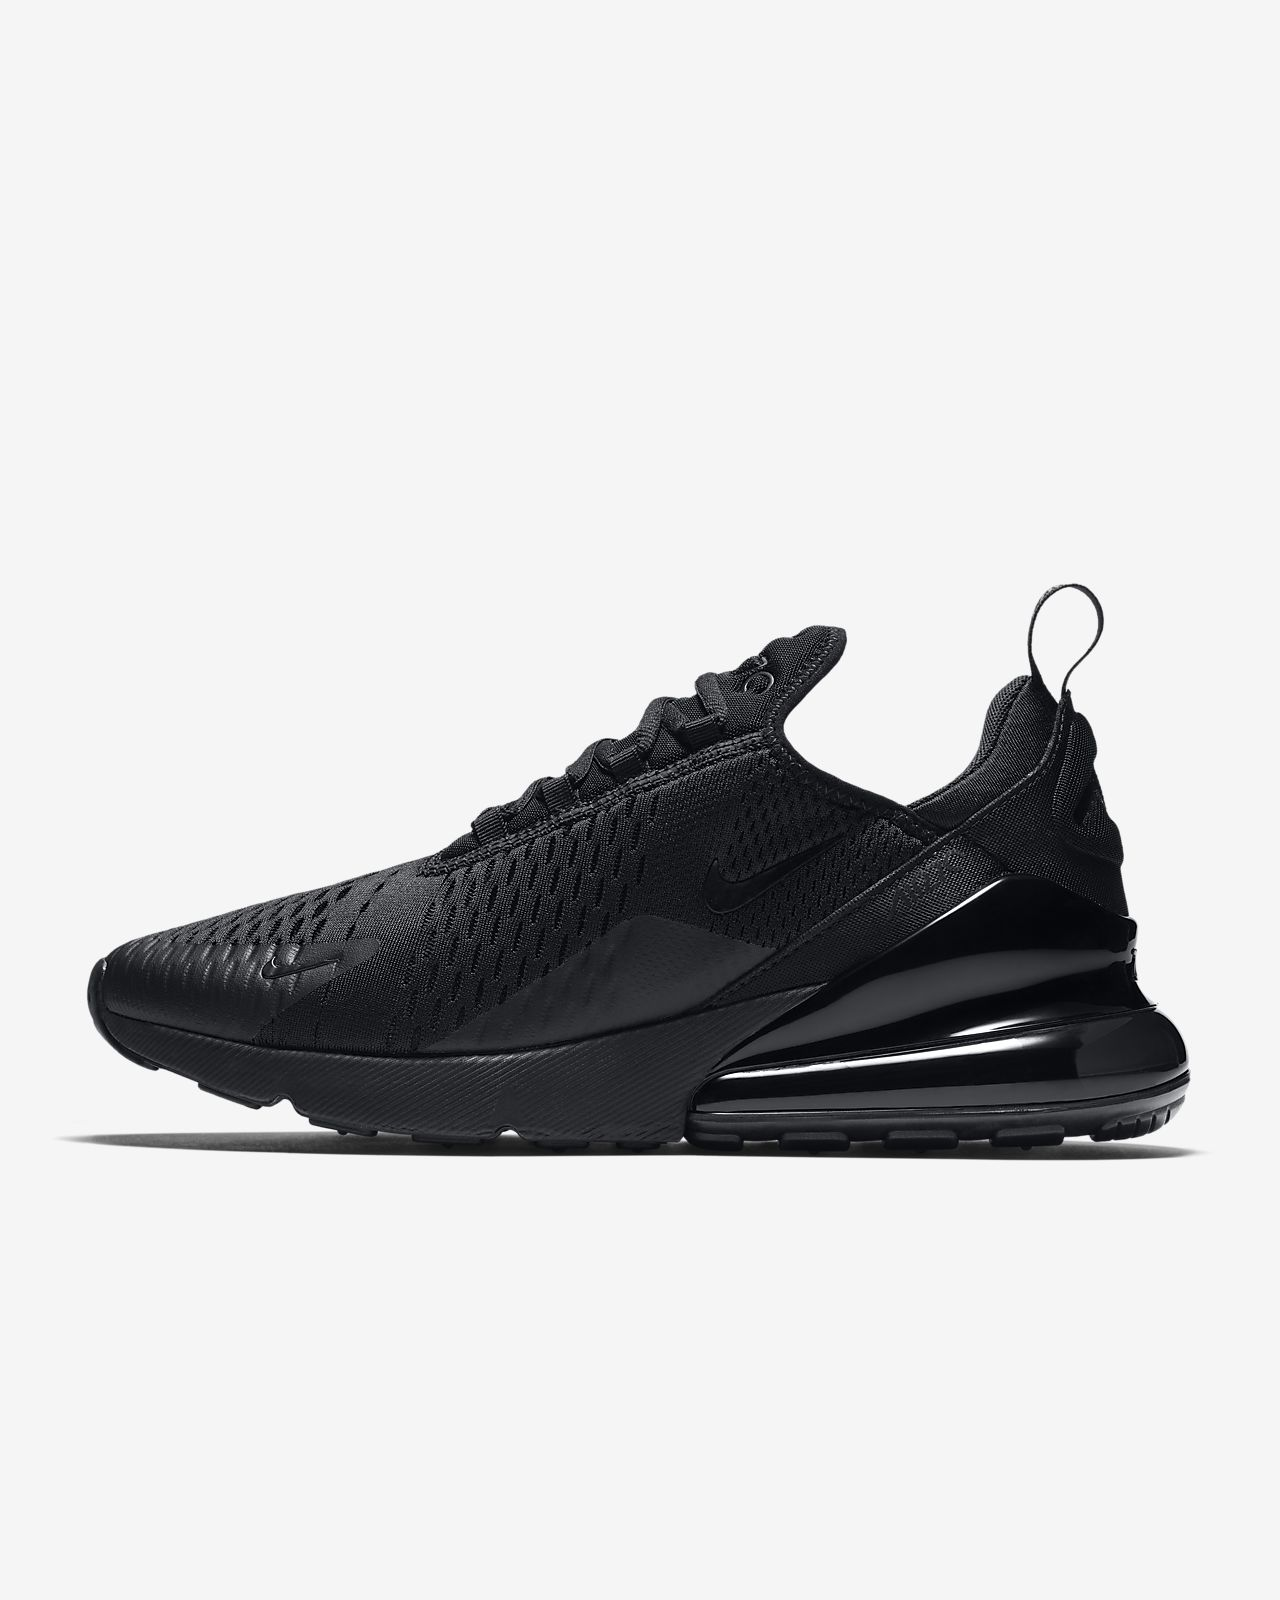 d633c5a6fc0e5 Nike Air Max 270 Men s Shoe. Nike.com AU